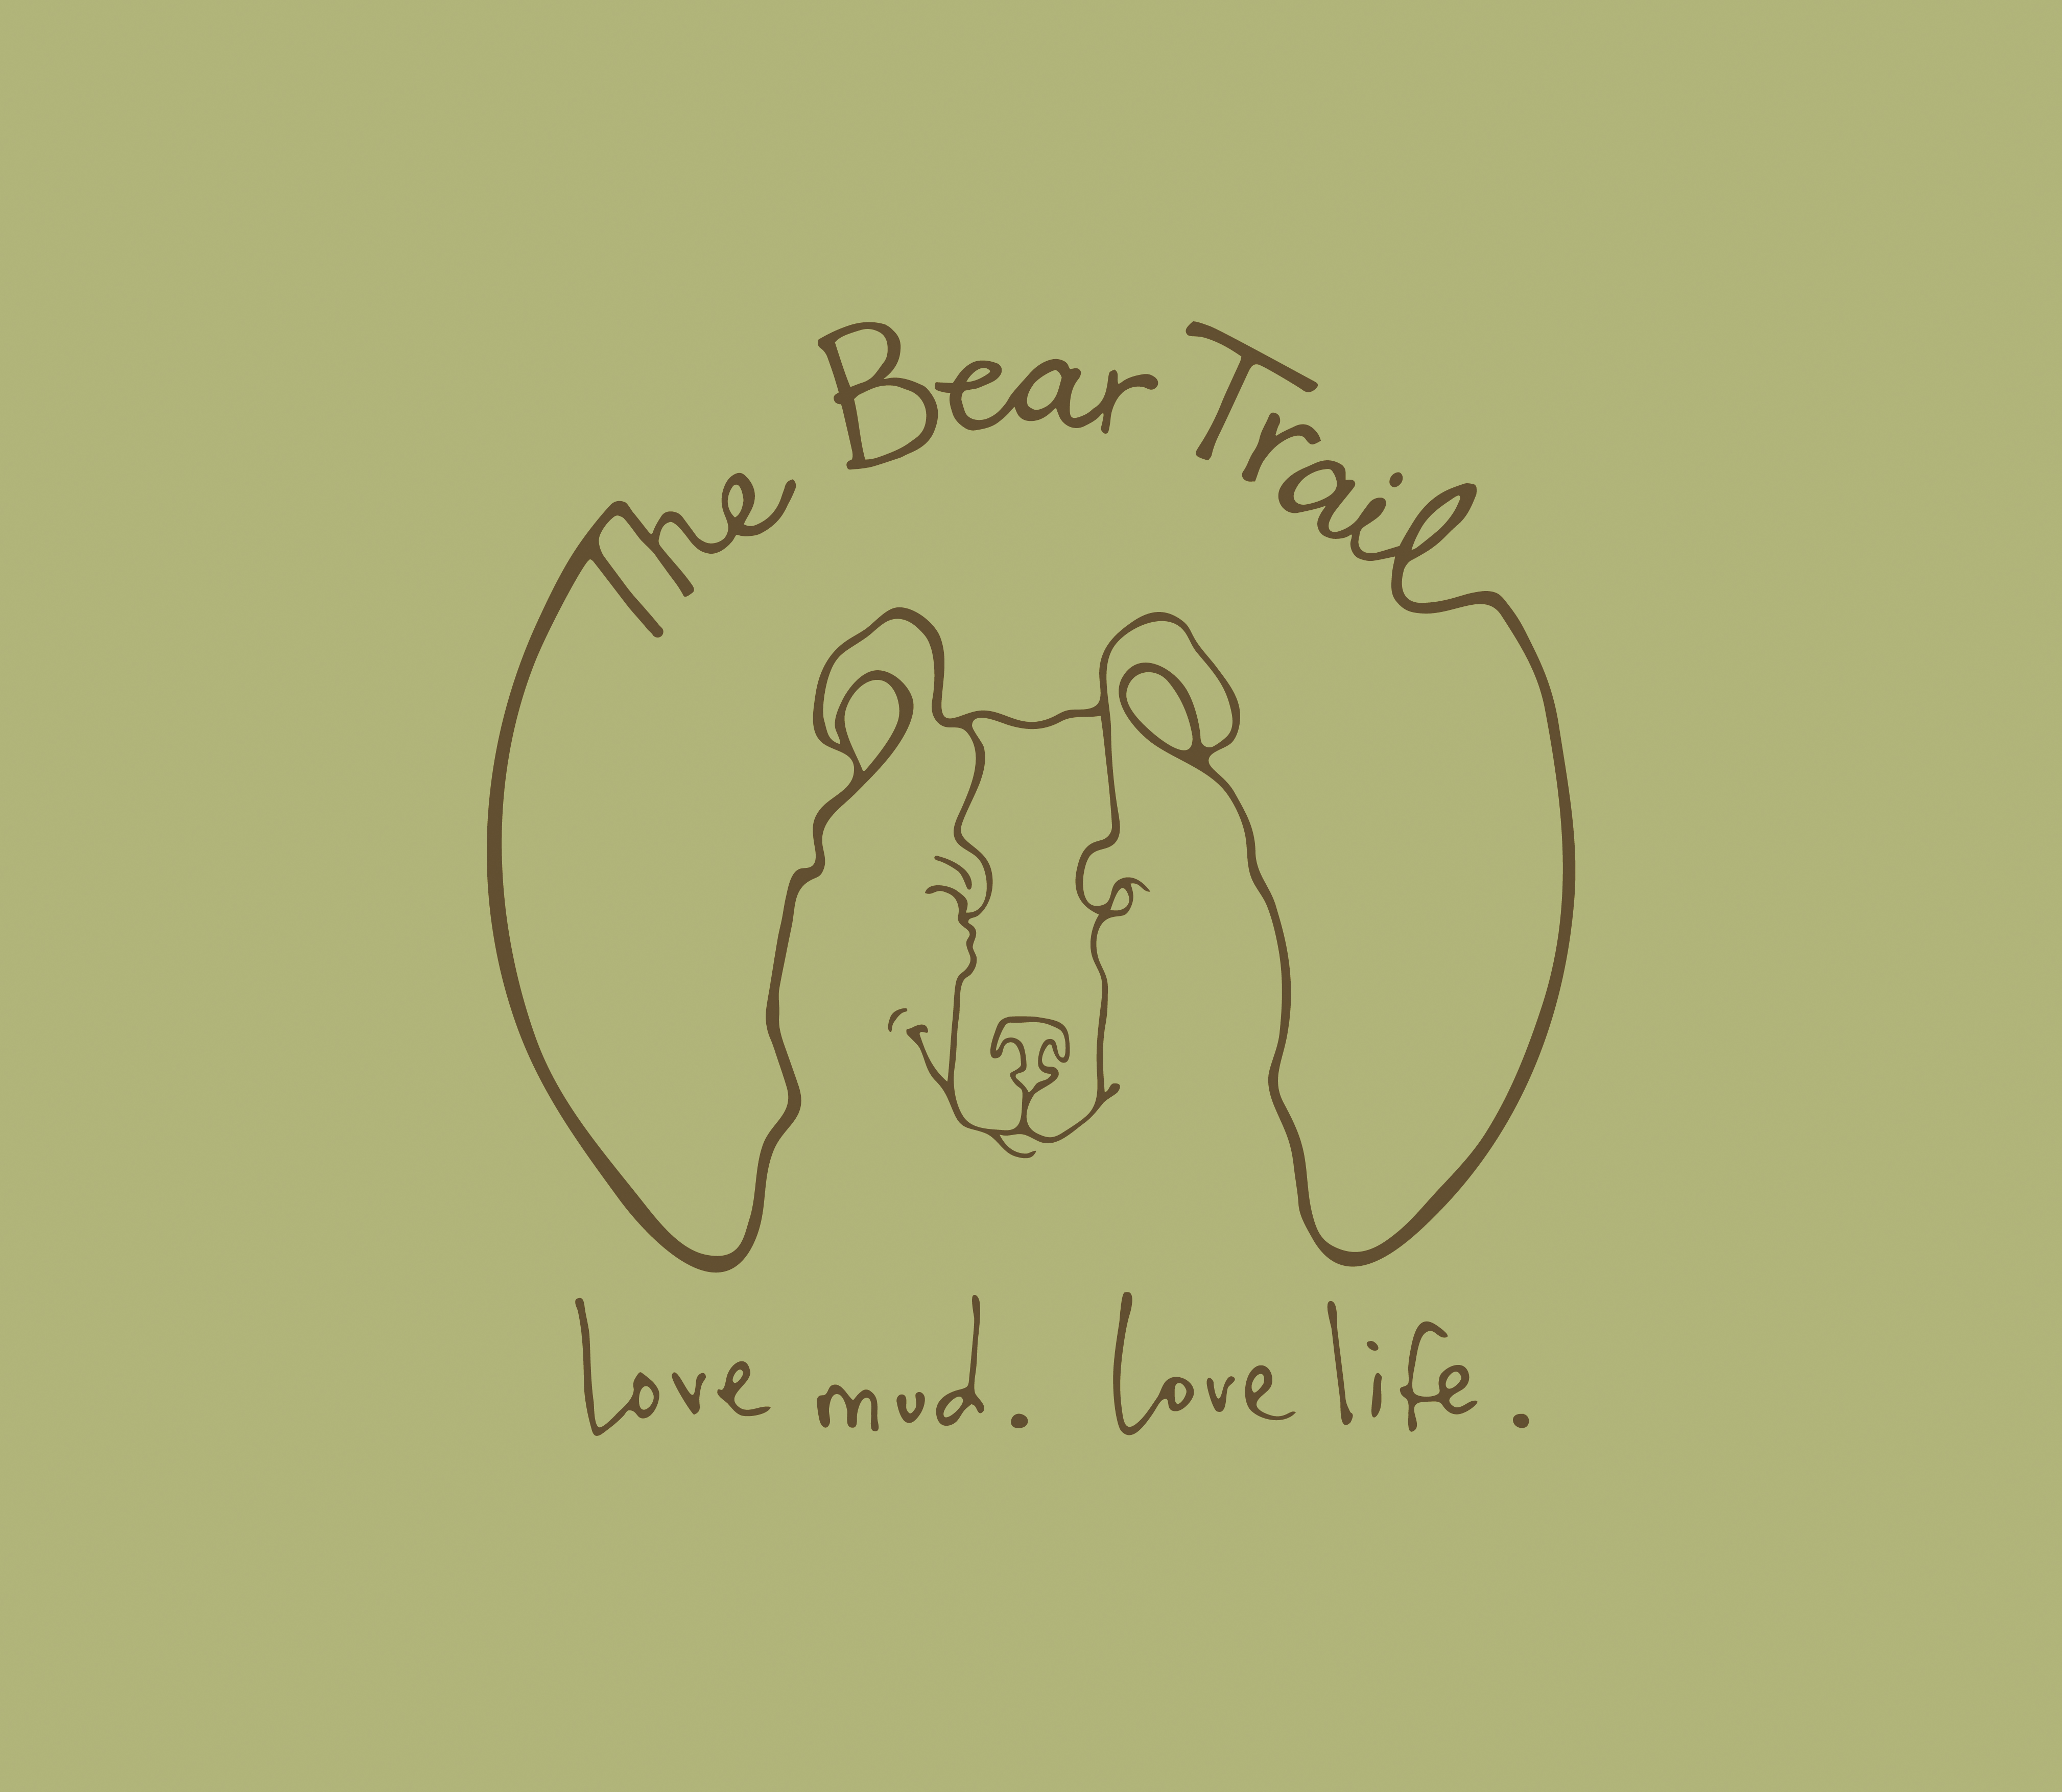 The Bear Trail profile image